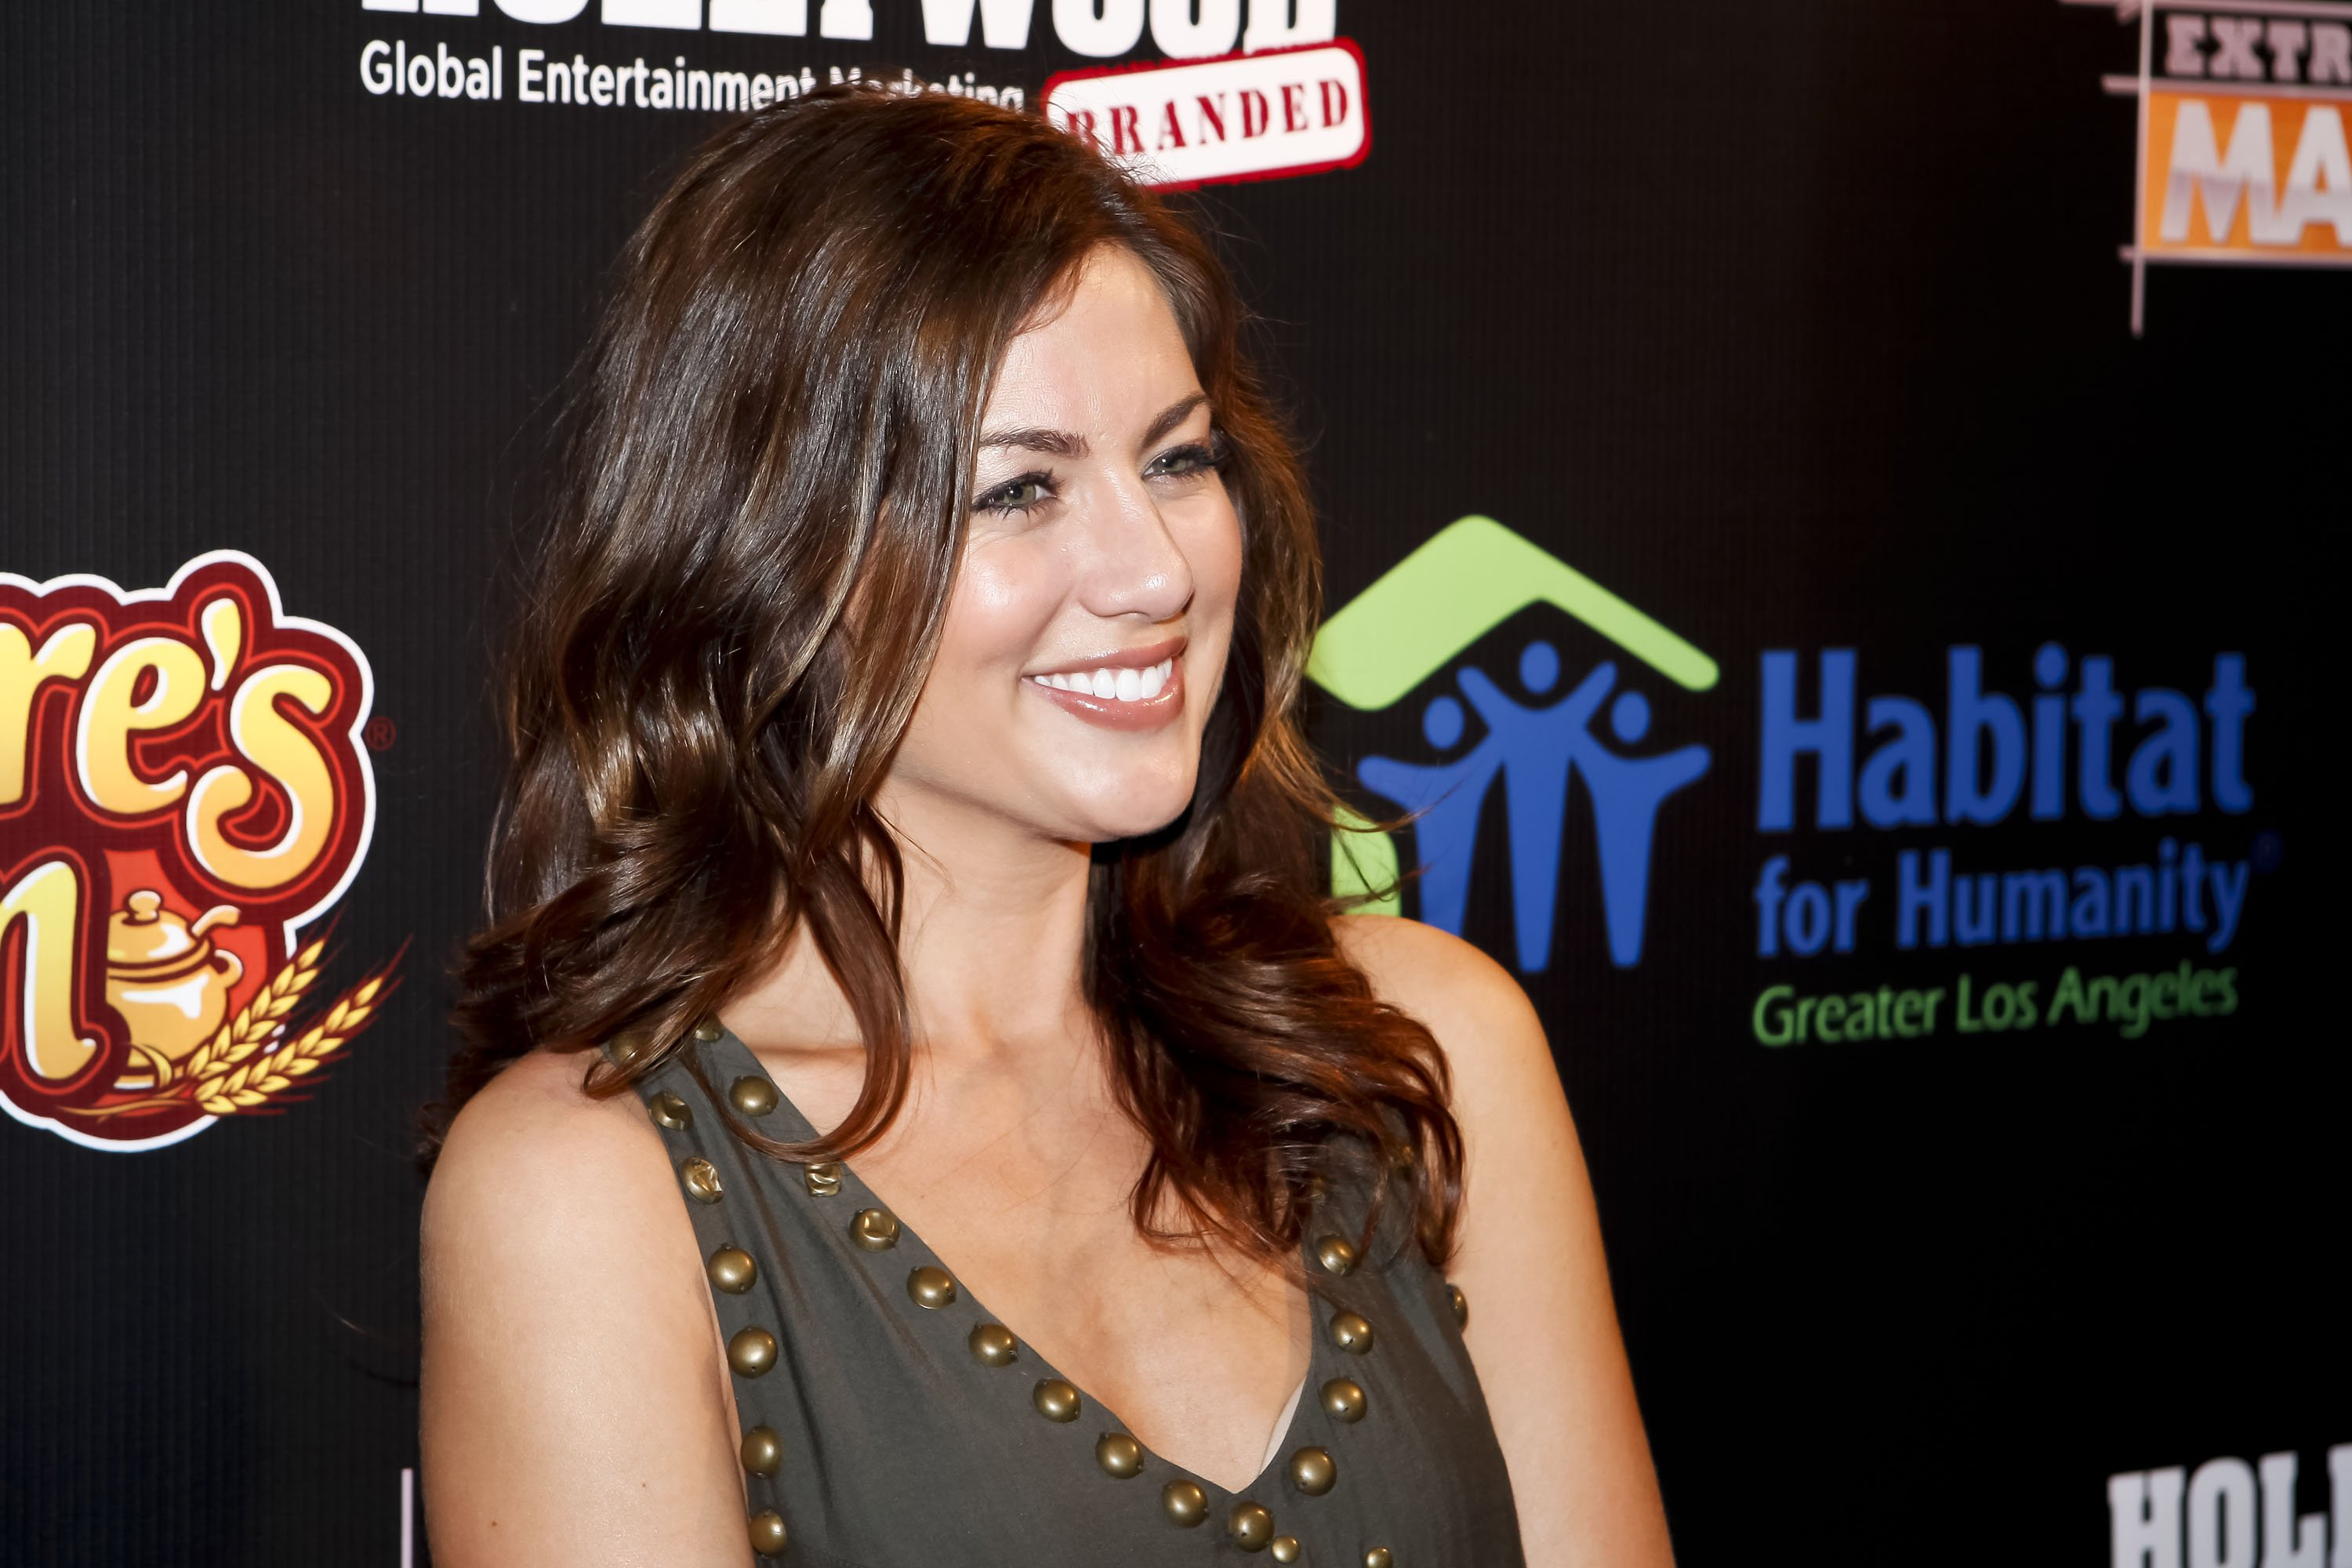 """TV pesonality Jillian Harris during the 2011 Habitat fro Humanity event with ABC's """"Extreme Makeover: Home Edition"""" in California. 